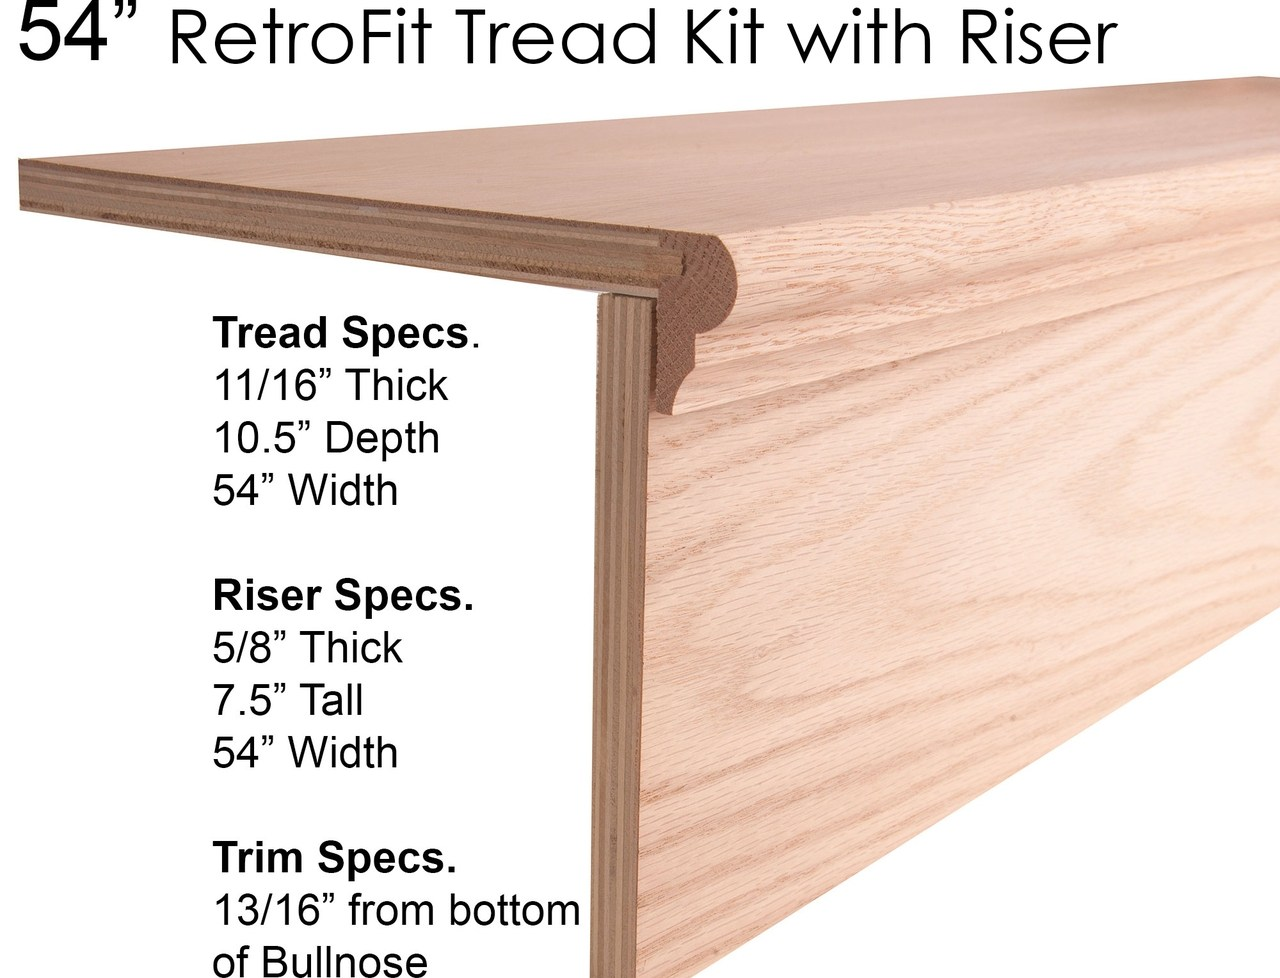 Wood Stair Treads Starting Steps Retrofit Treads   Wood Stair Treads And Risers